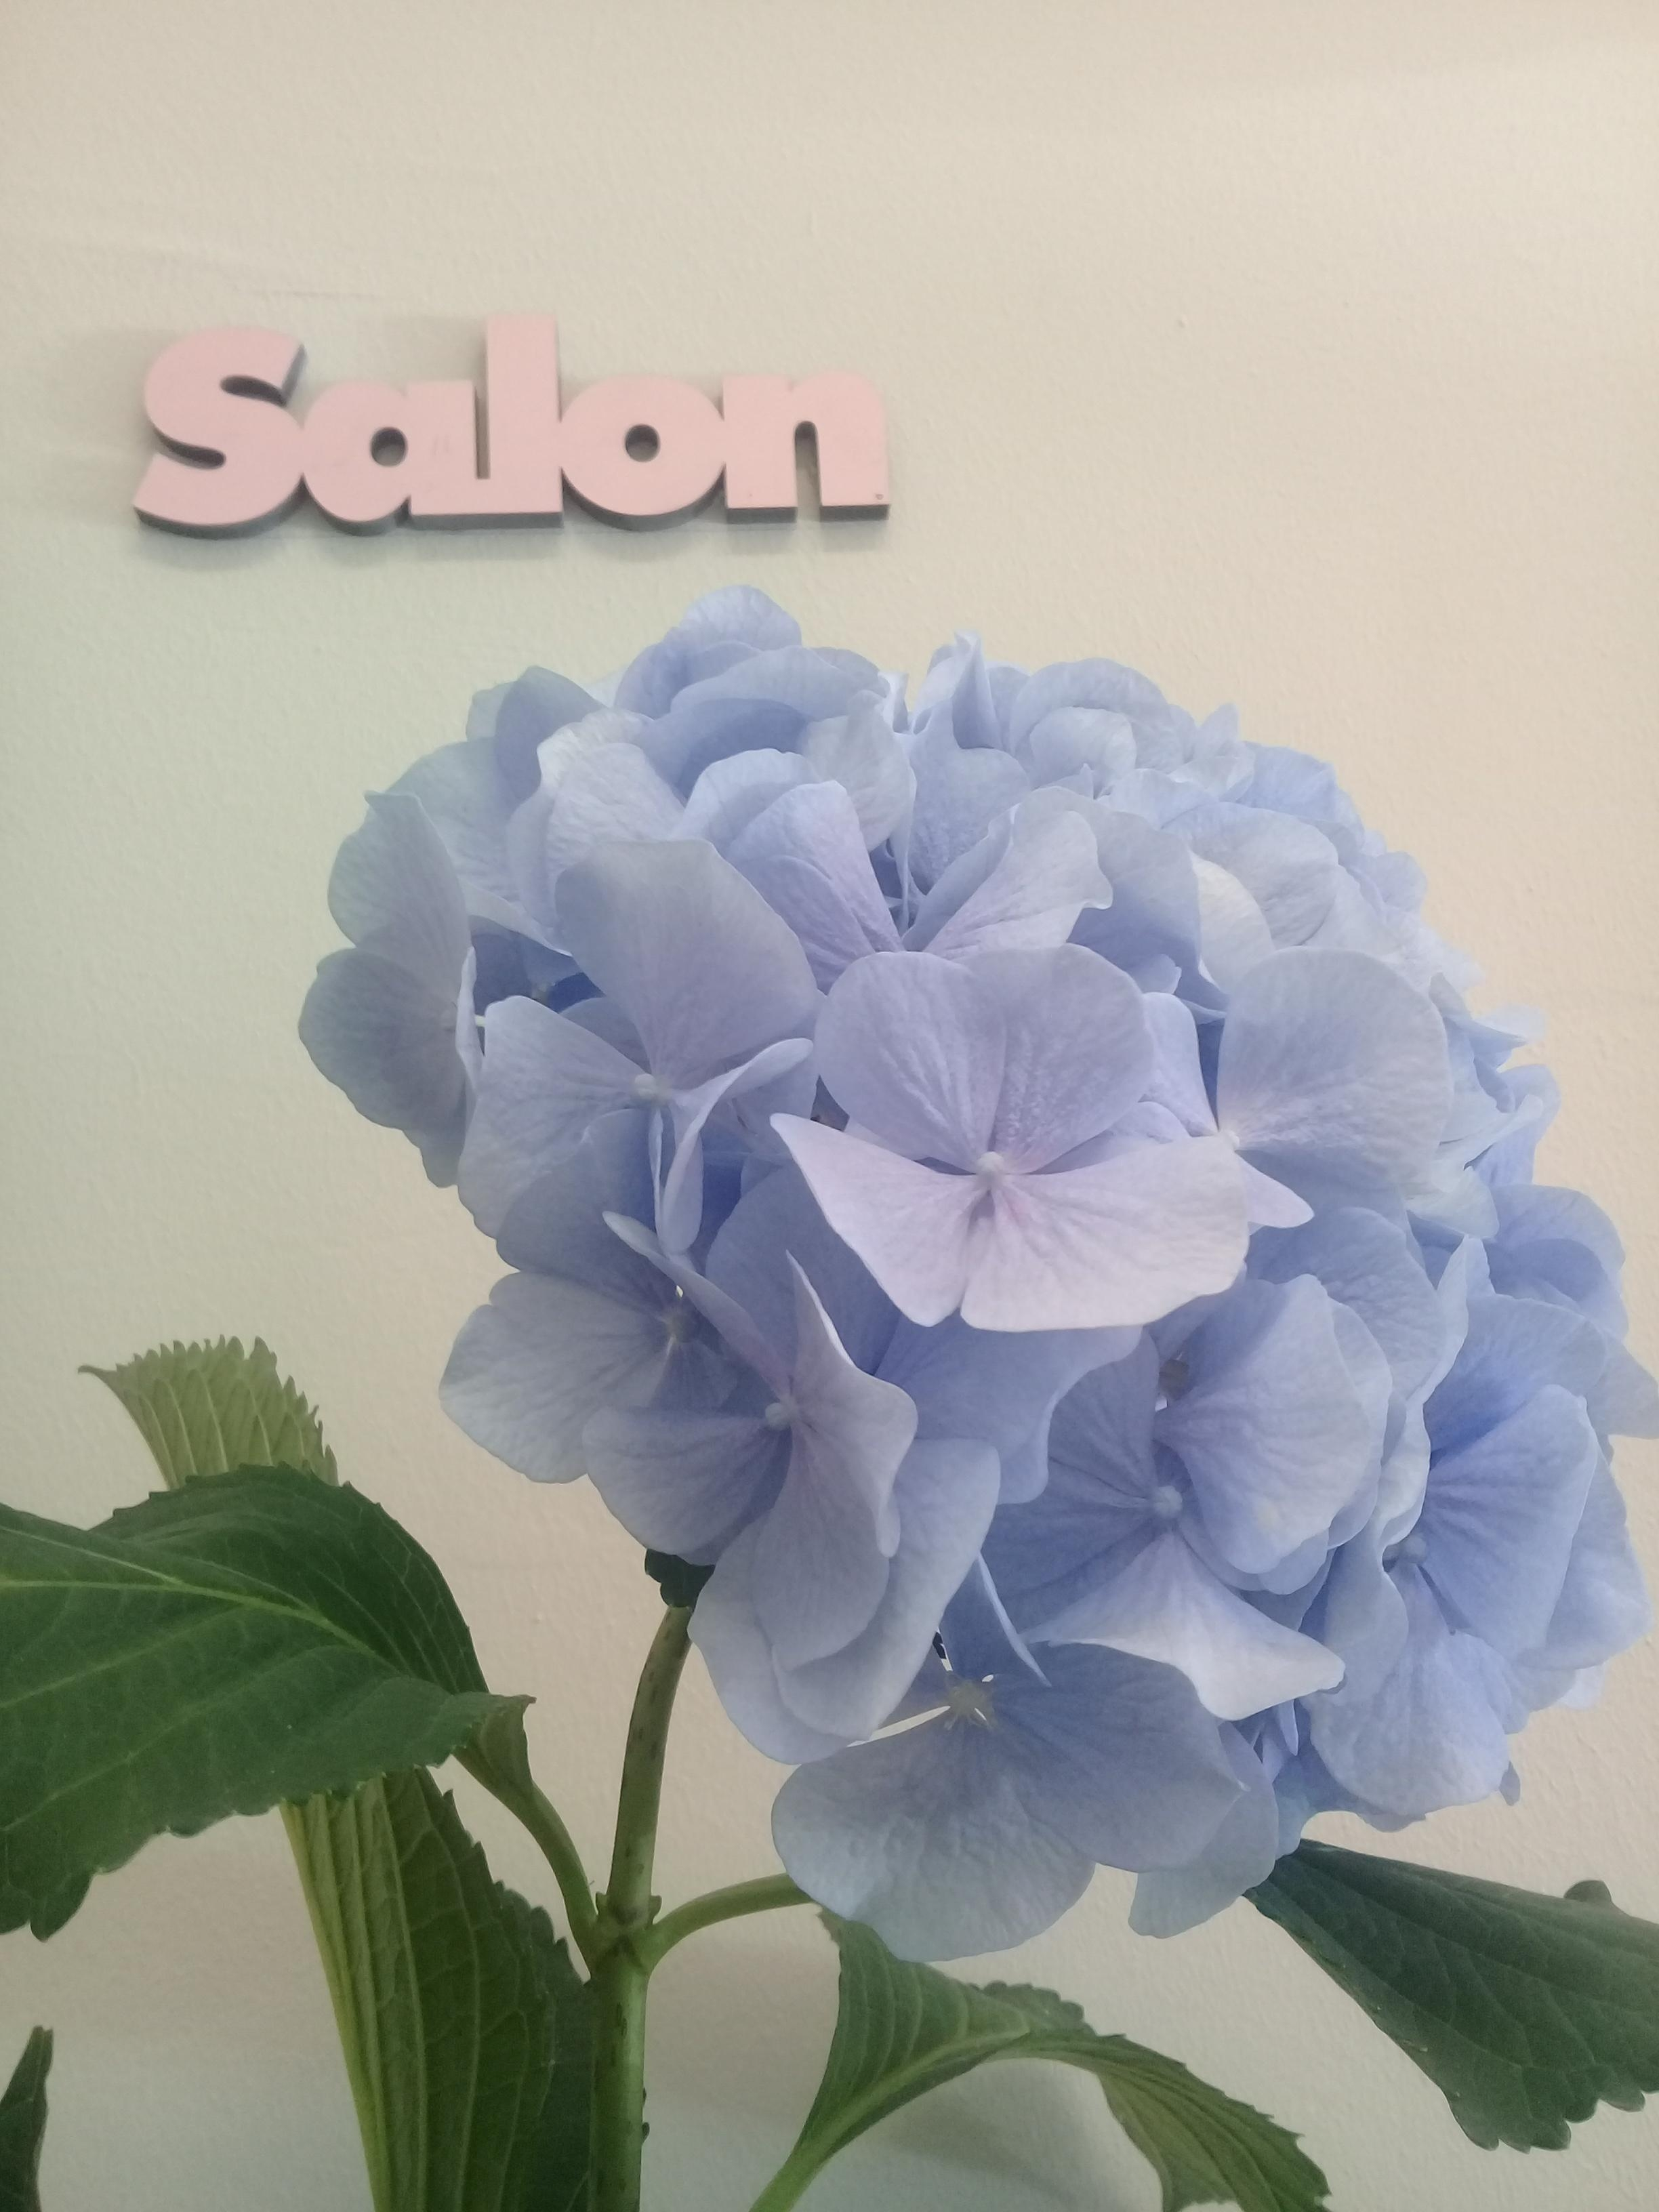 #freshflowerfriday#hortensien#salon